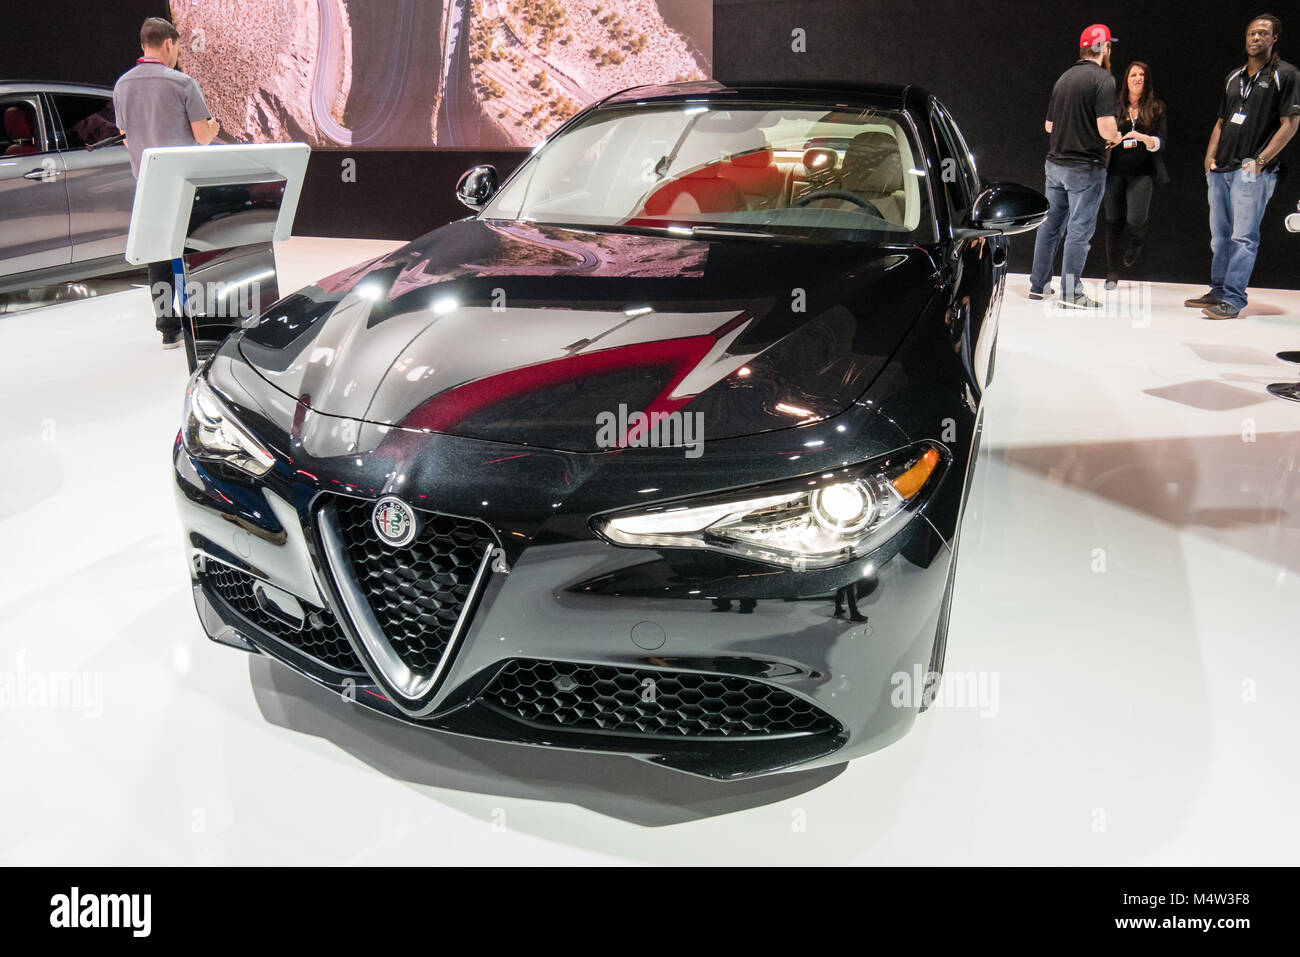 black alfa romeo stock photos & black alfa romeo stock images - alamy